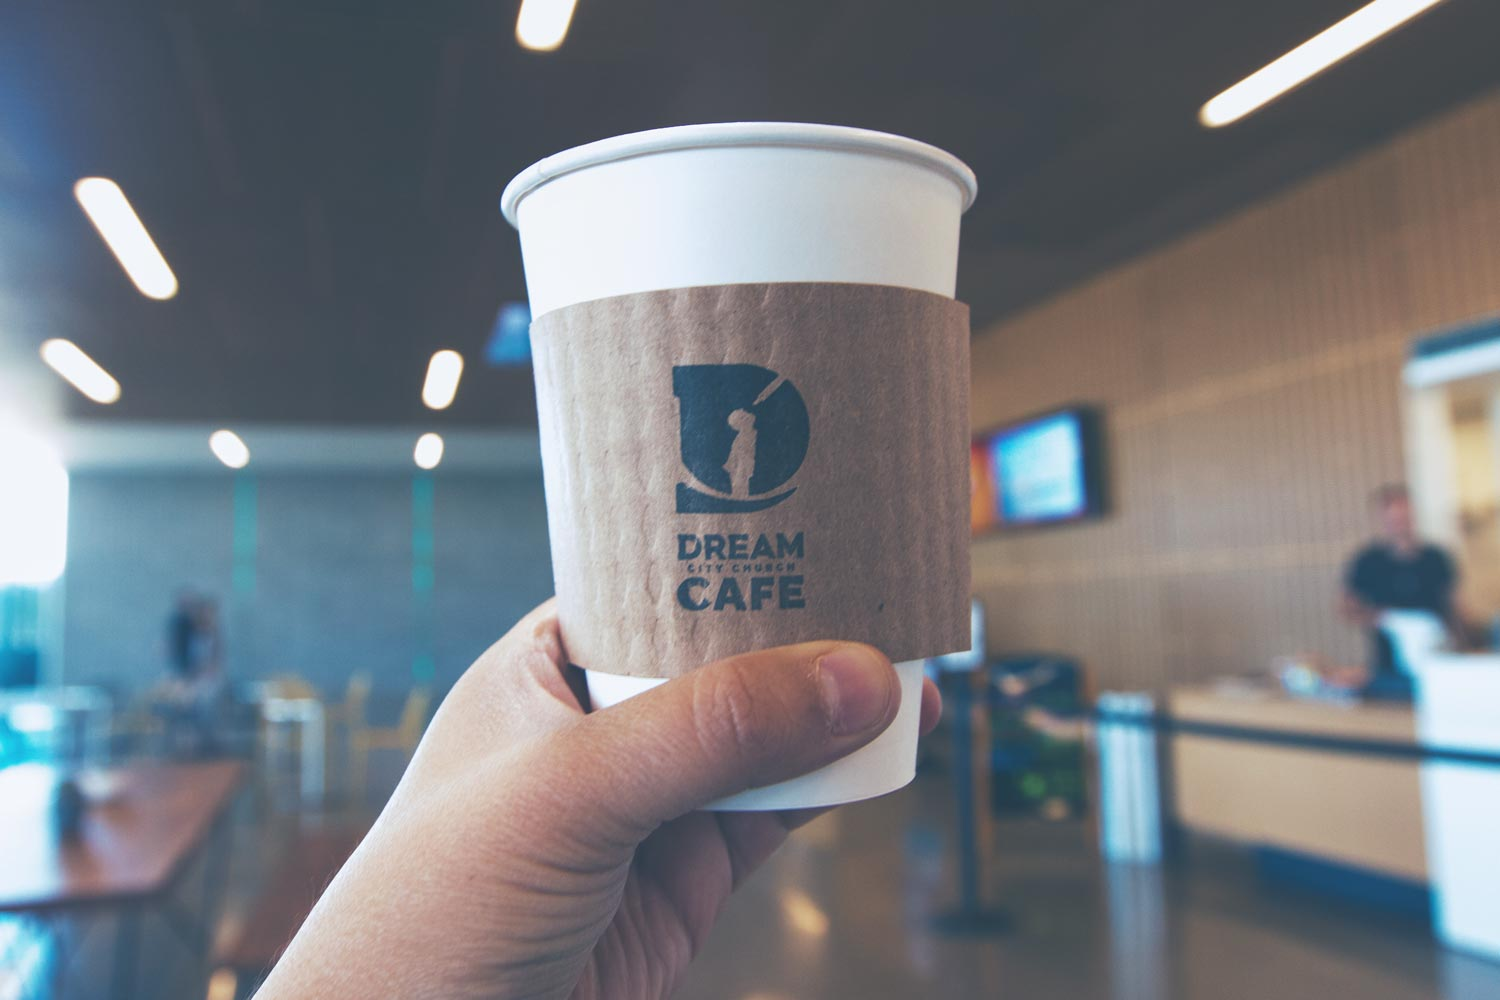 Dream City Church Cafe coffee cup